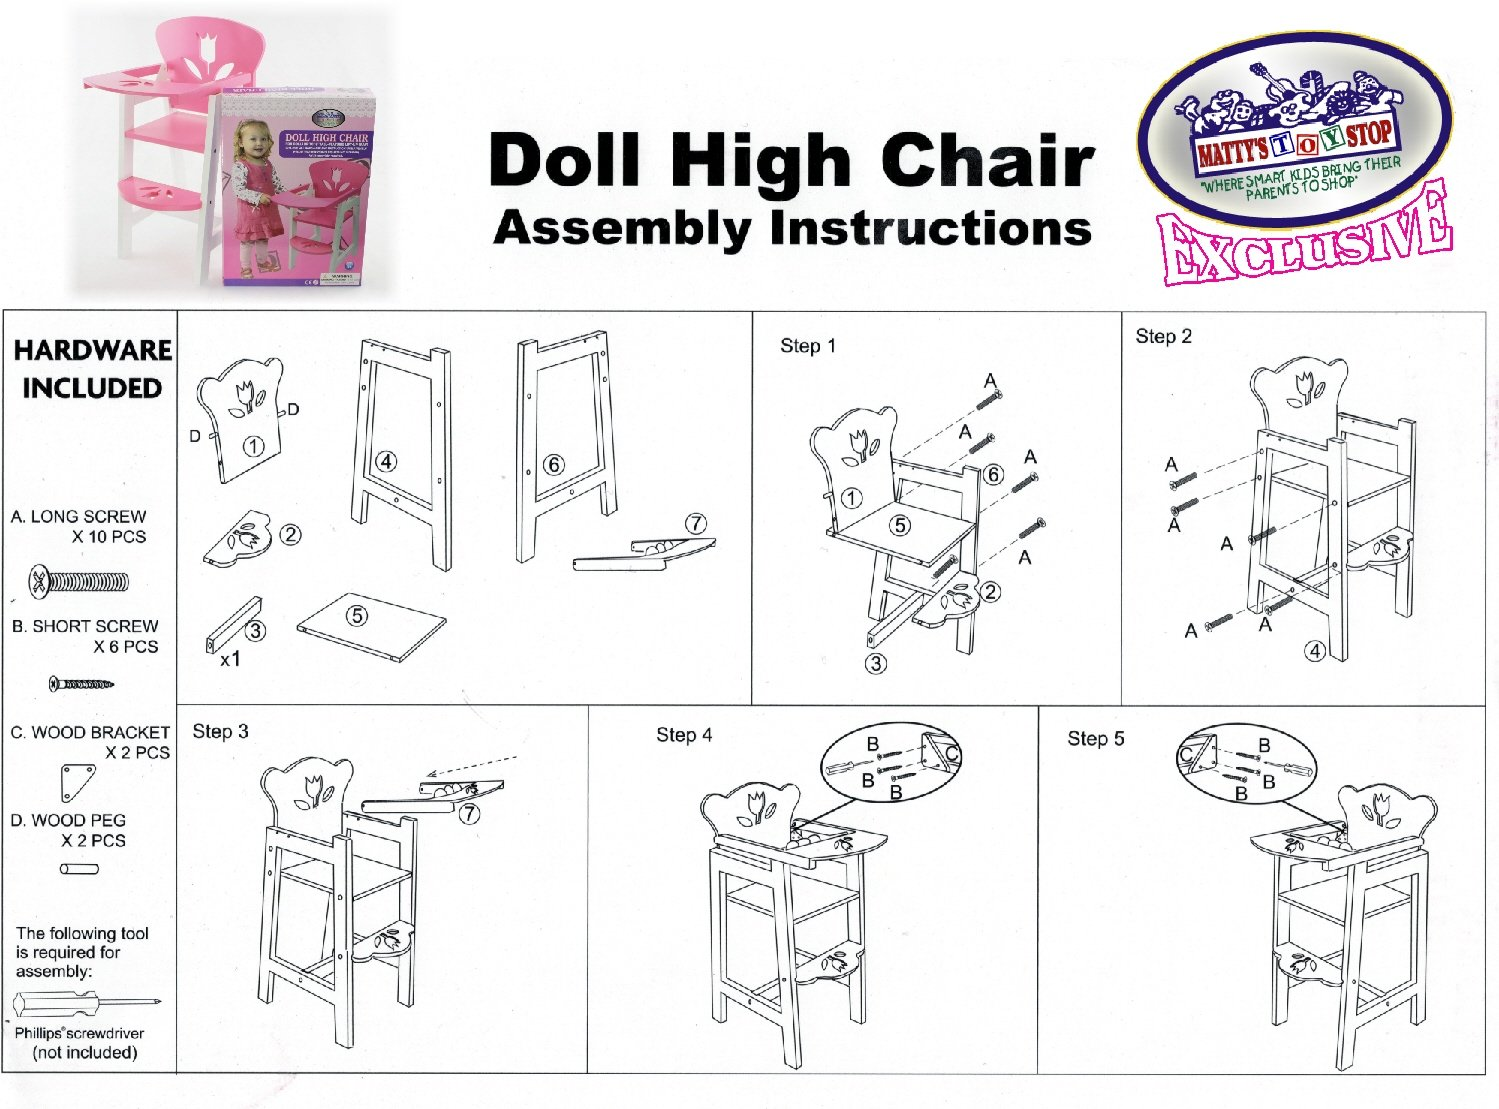 Mattys Toy Stop 18 Inch Pink//White Wooden Doll High Chair with Lift-Up Tray /& Floral Design Fits American Girl Dolls Homeware